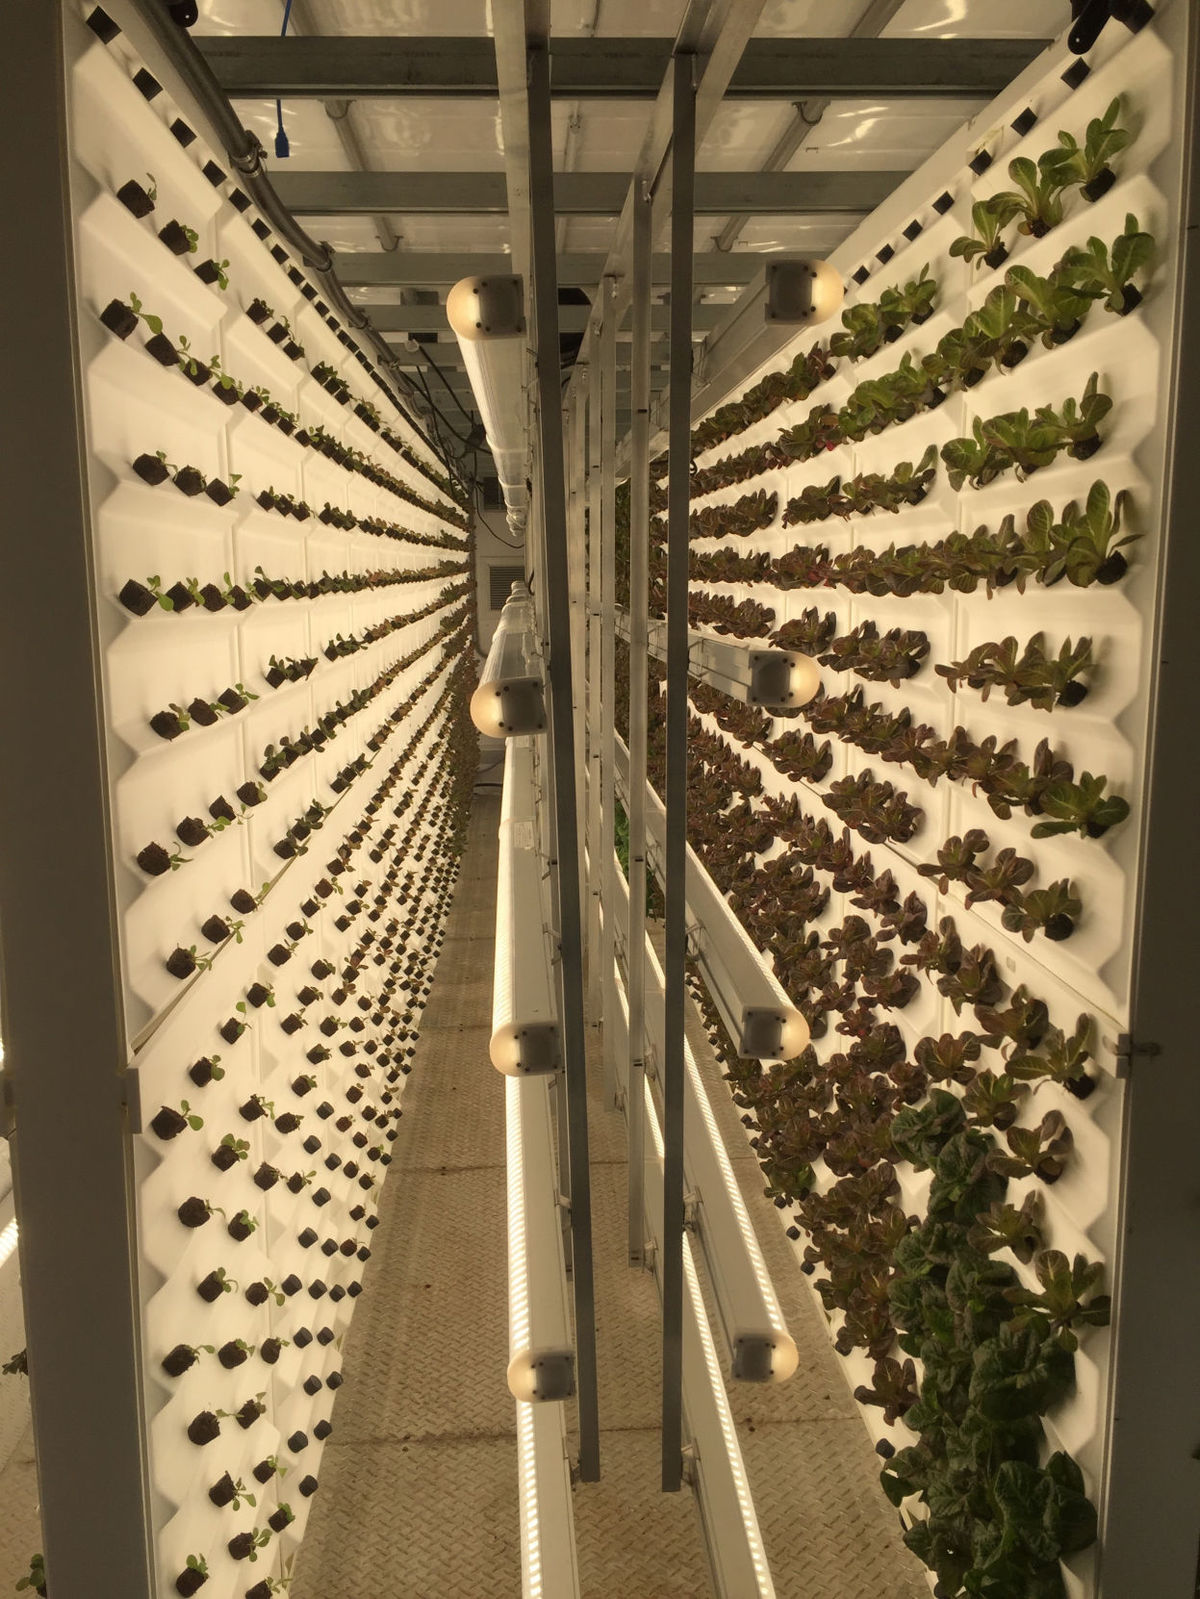 Lettuce grows inside a converted shipping container at Tiger Corners Farms in Summerville. Tony Bertauski/Provided   Tony Bertauski